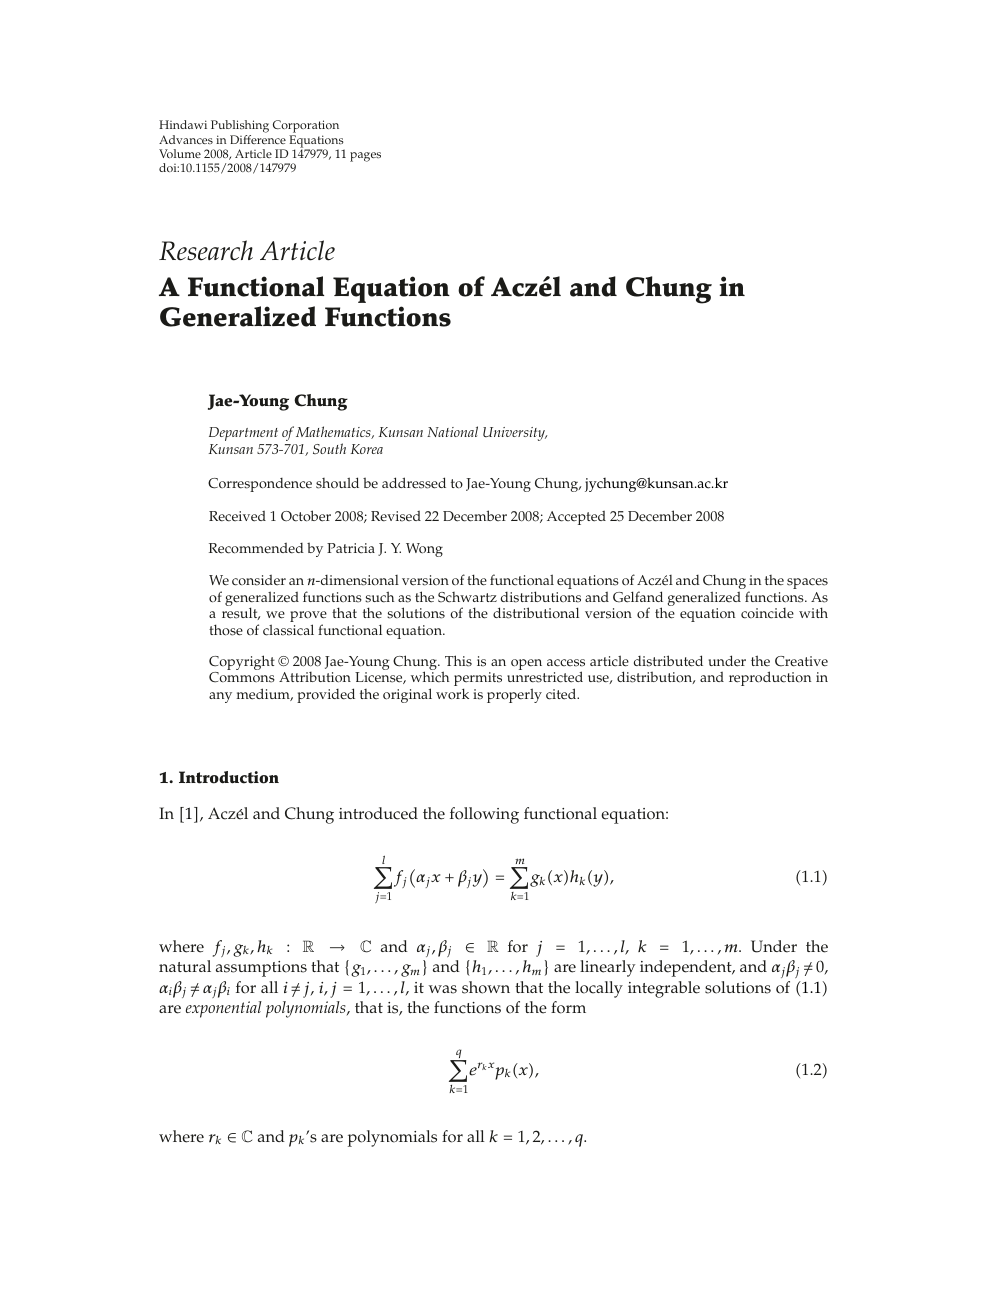 Gelfand Shilov Generalized Functions Download